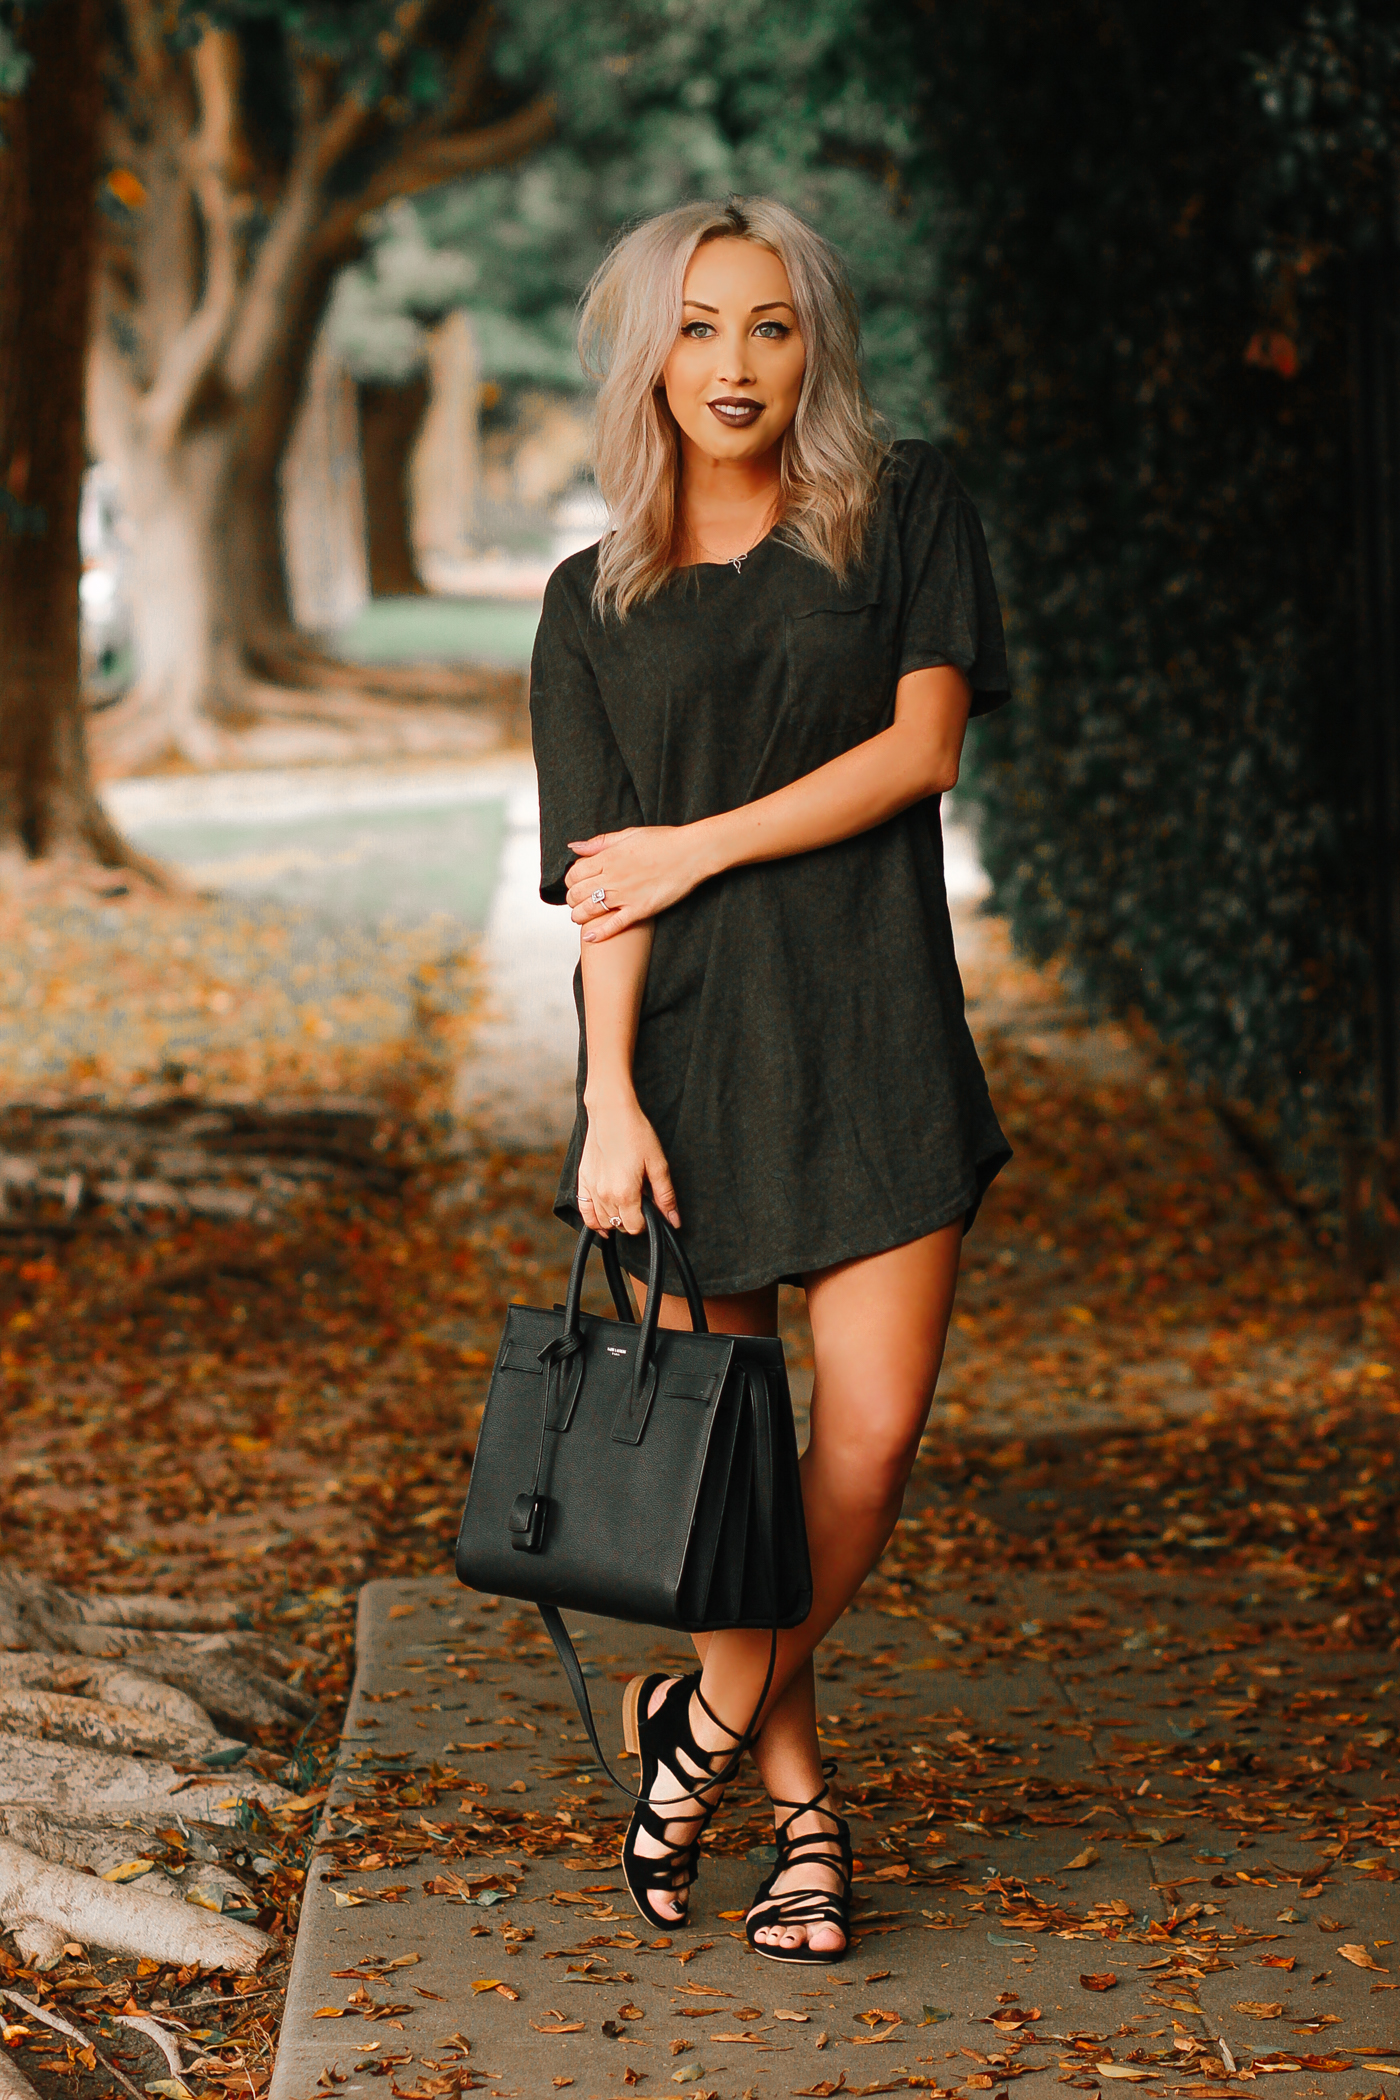 Blondie in the City | Men's Tee as a Women's T-Shirt Dress from @UrbanOutfitters